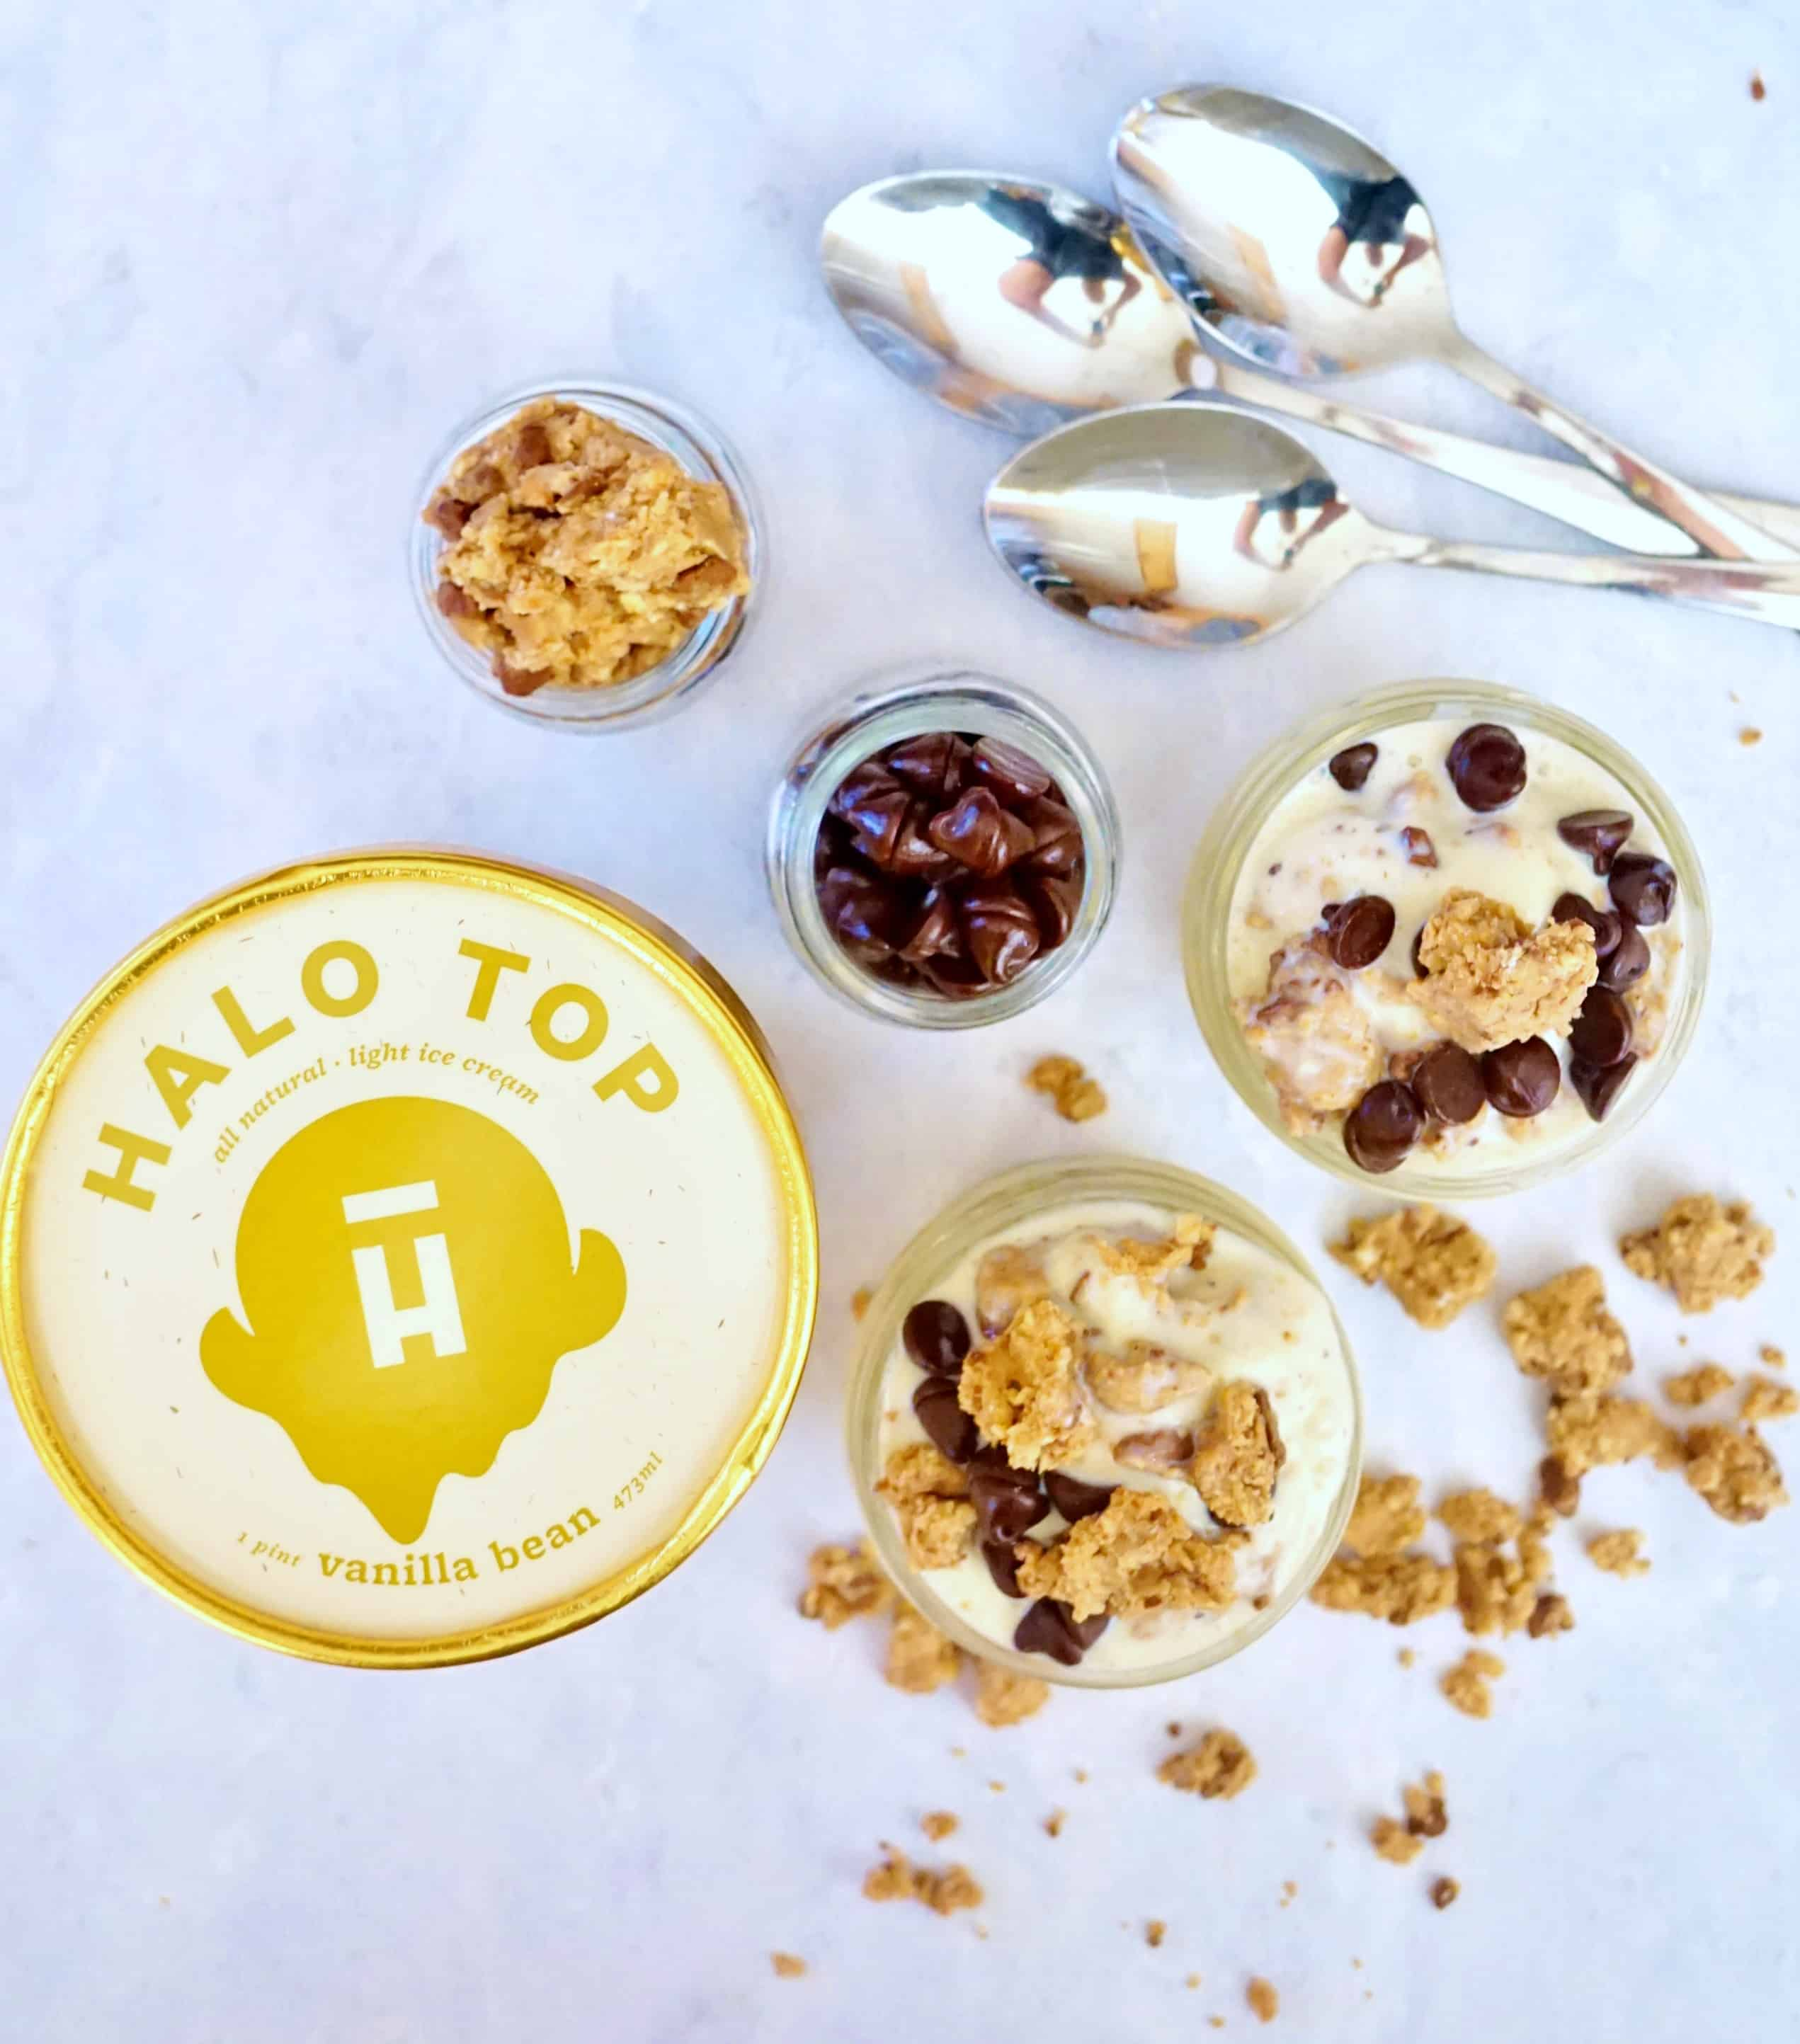 Chocolate Chip Cookie Dough Ice Cream w/ Halo Top- Healthy, GF